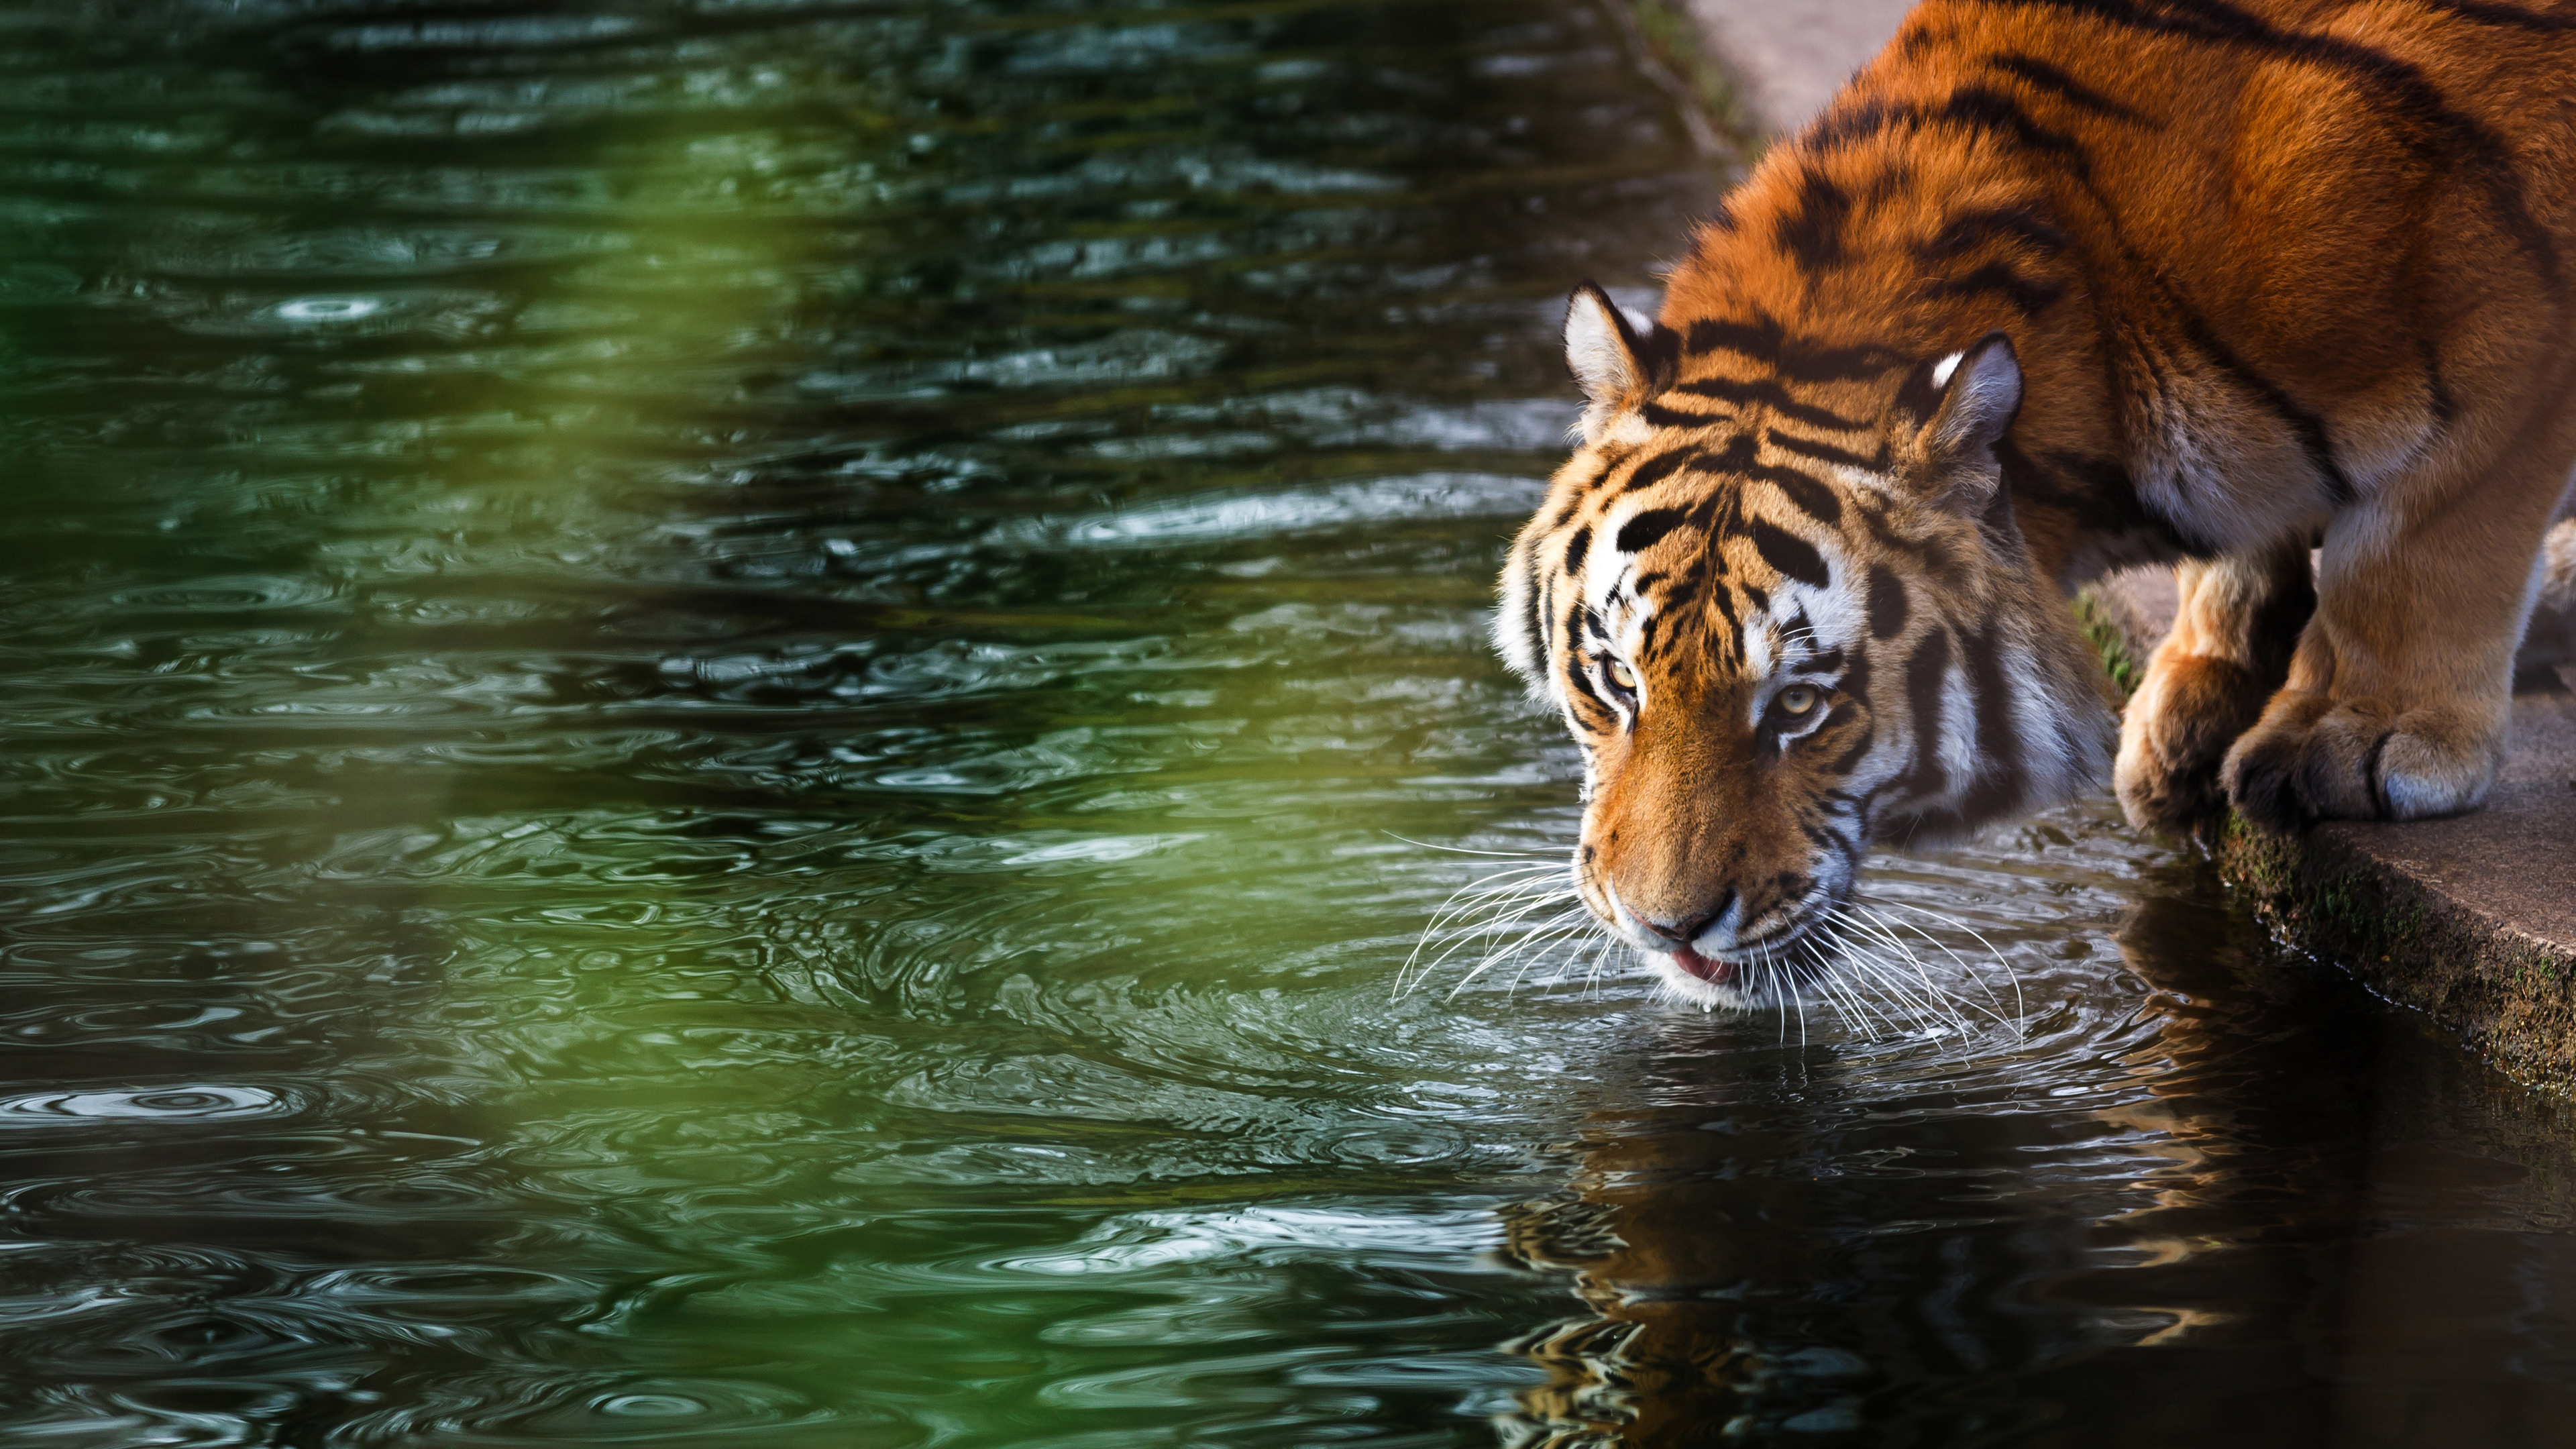 3840x2160 tiger 4k 4k hd 4k wallpapers images - Best animal wallpaper download ...